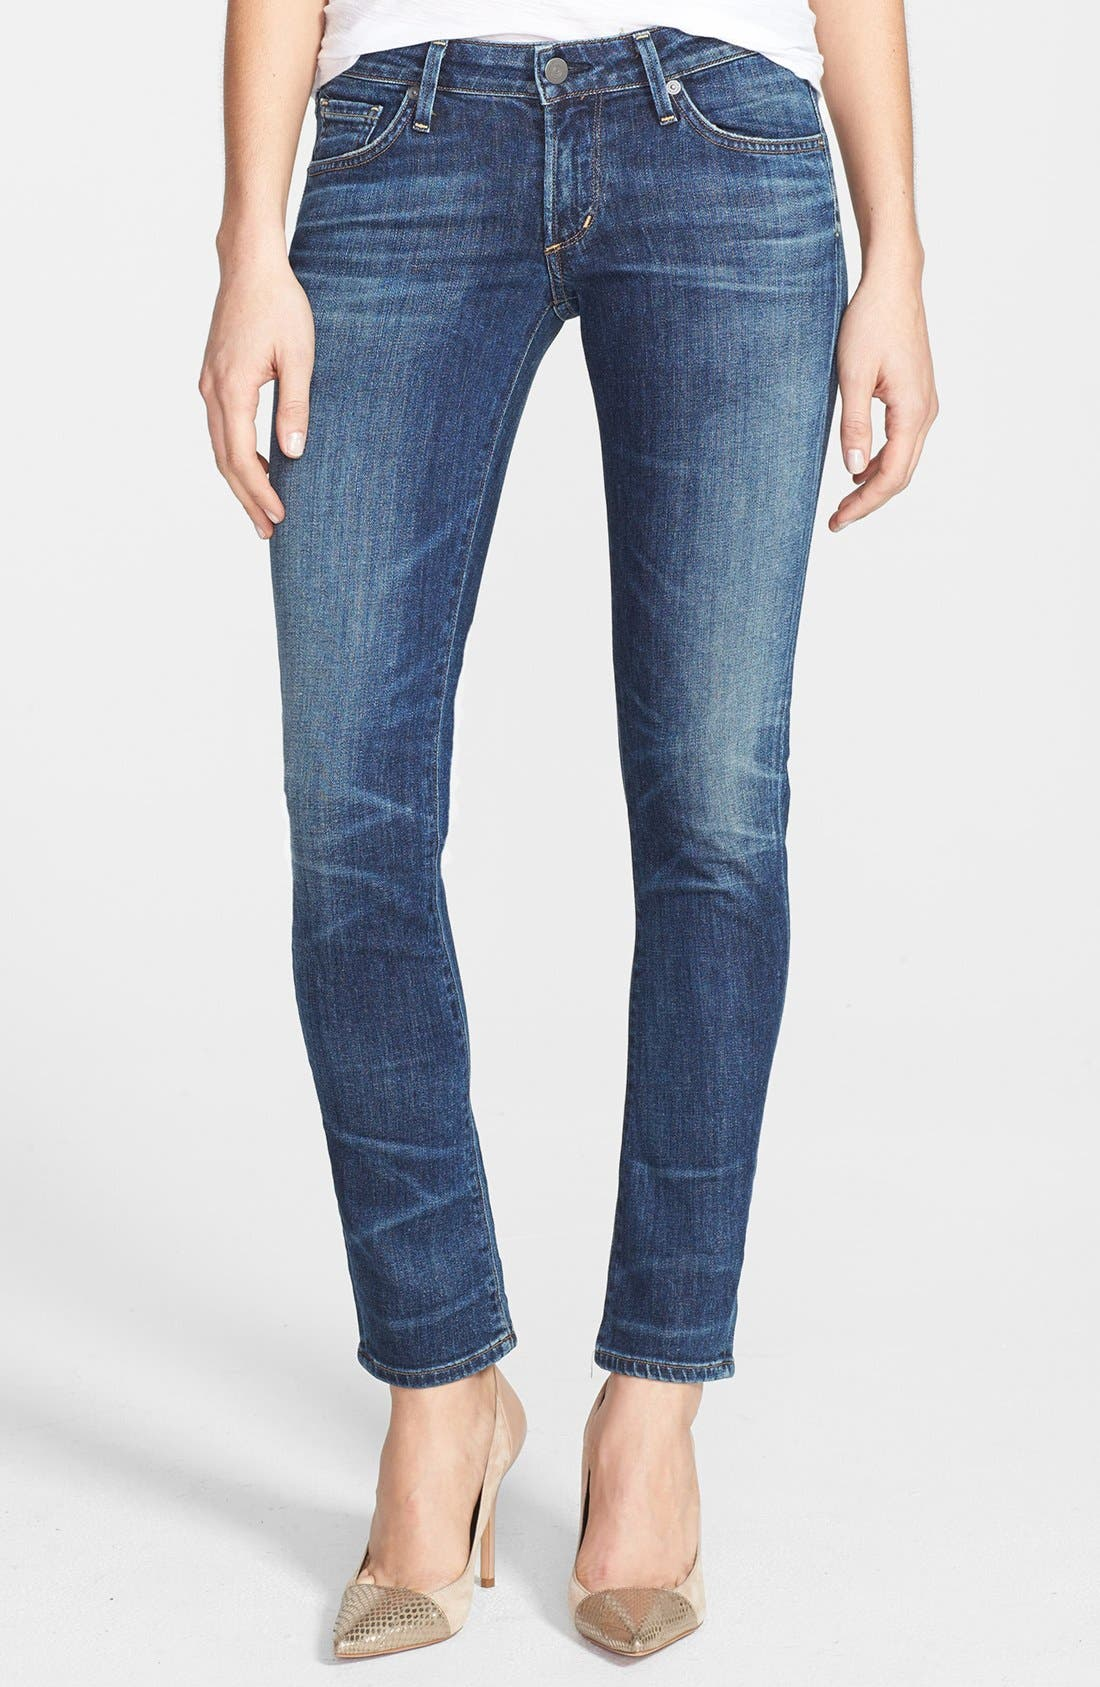 Alternate Image 1 Selected - Citizens of Humanity 'Racer' Whiskered Skinny Jeans (Patina)